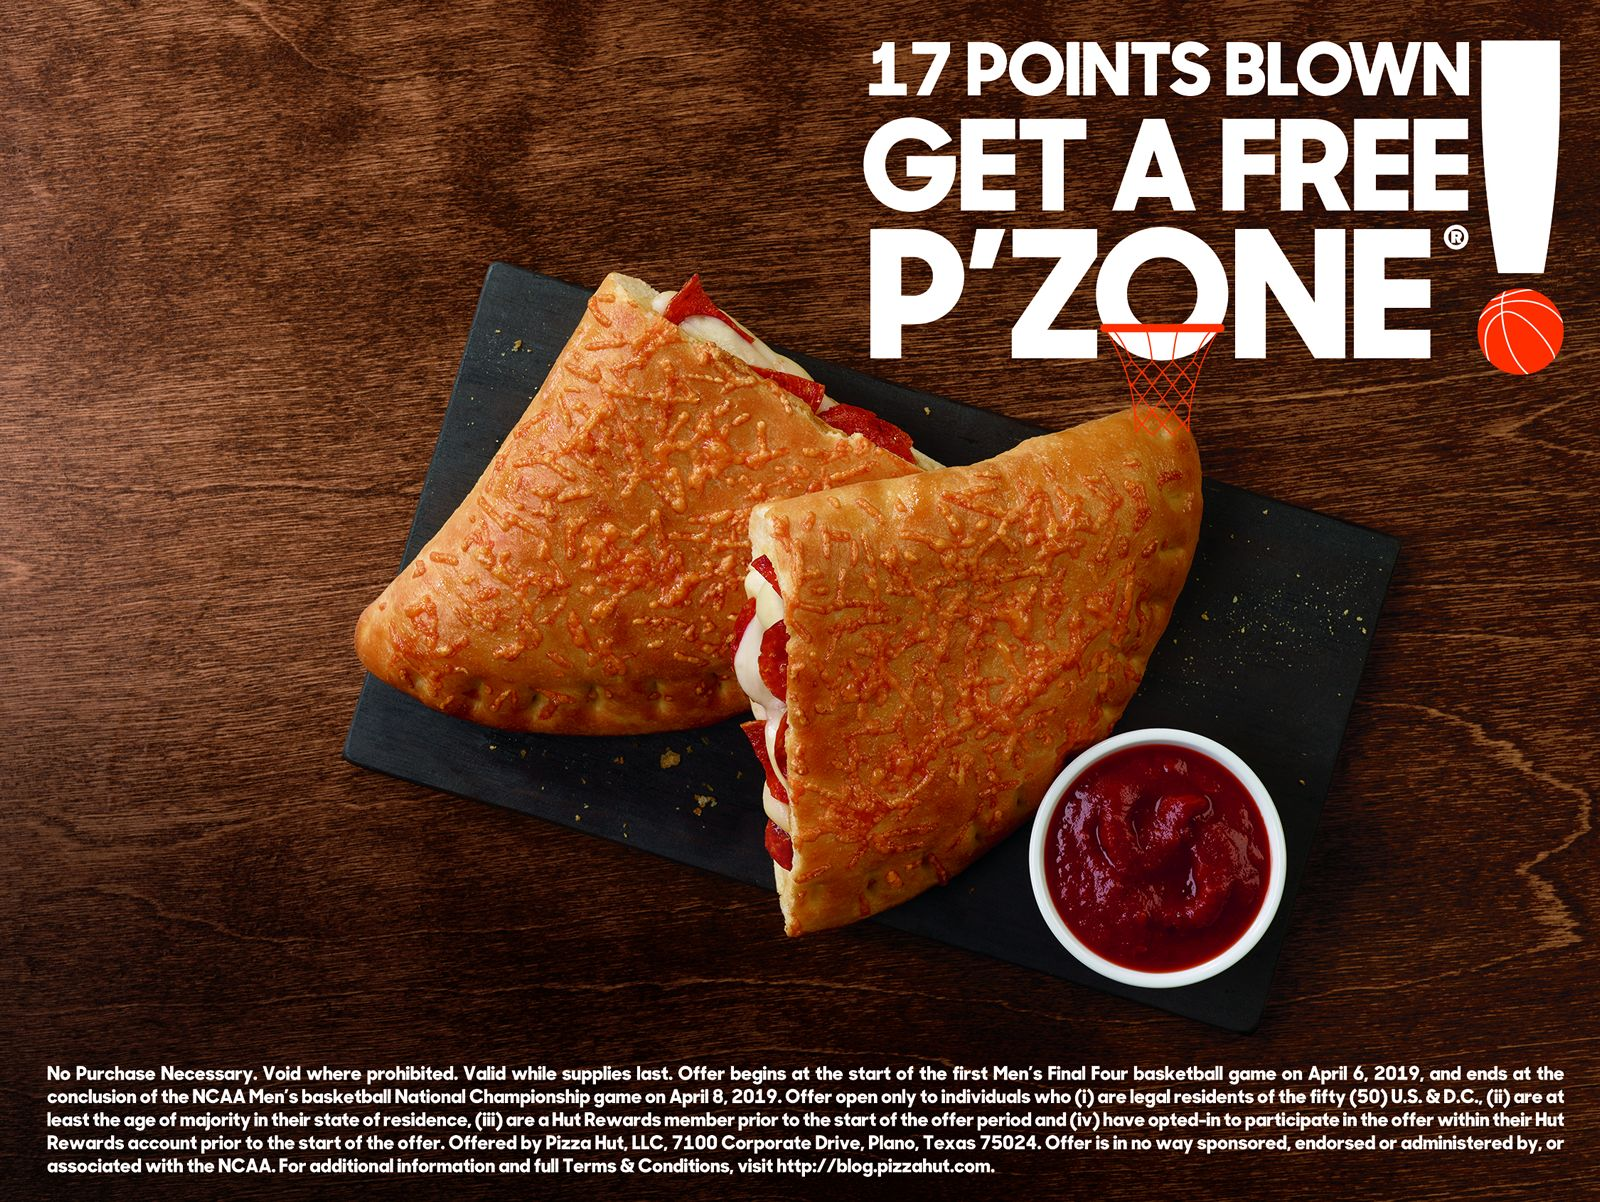 Pizza Hut Offers America A Chance To Win A FREE P'ZONE During The Men's NCAA March Madness Final Four And Championship Games